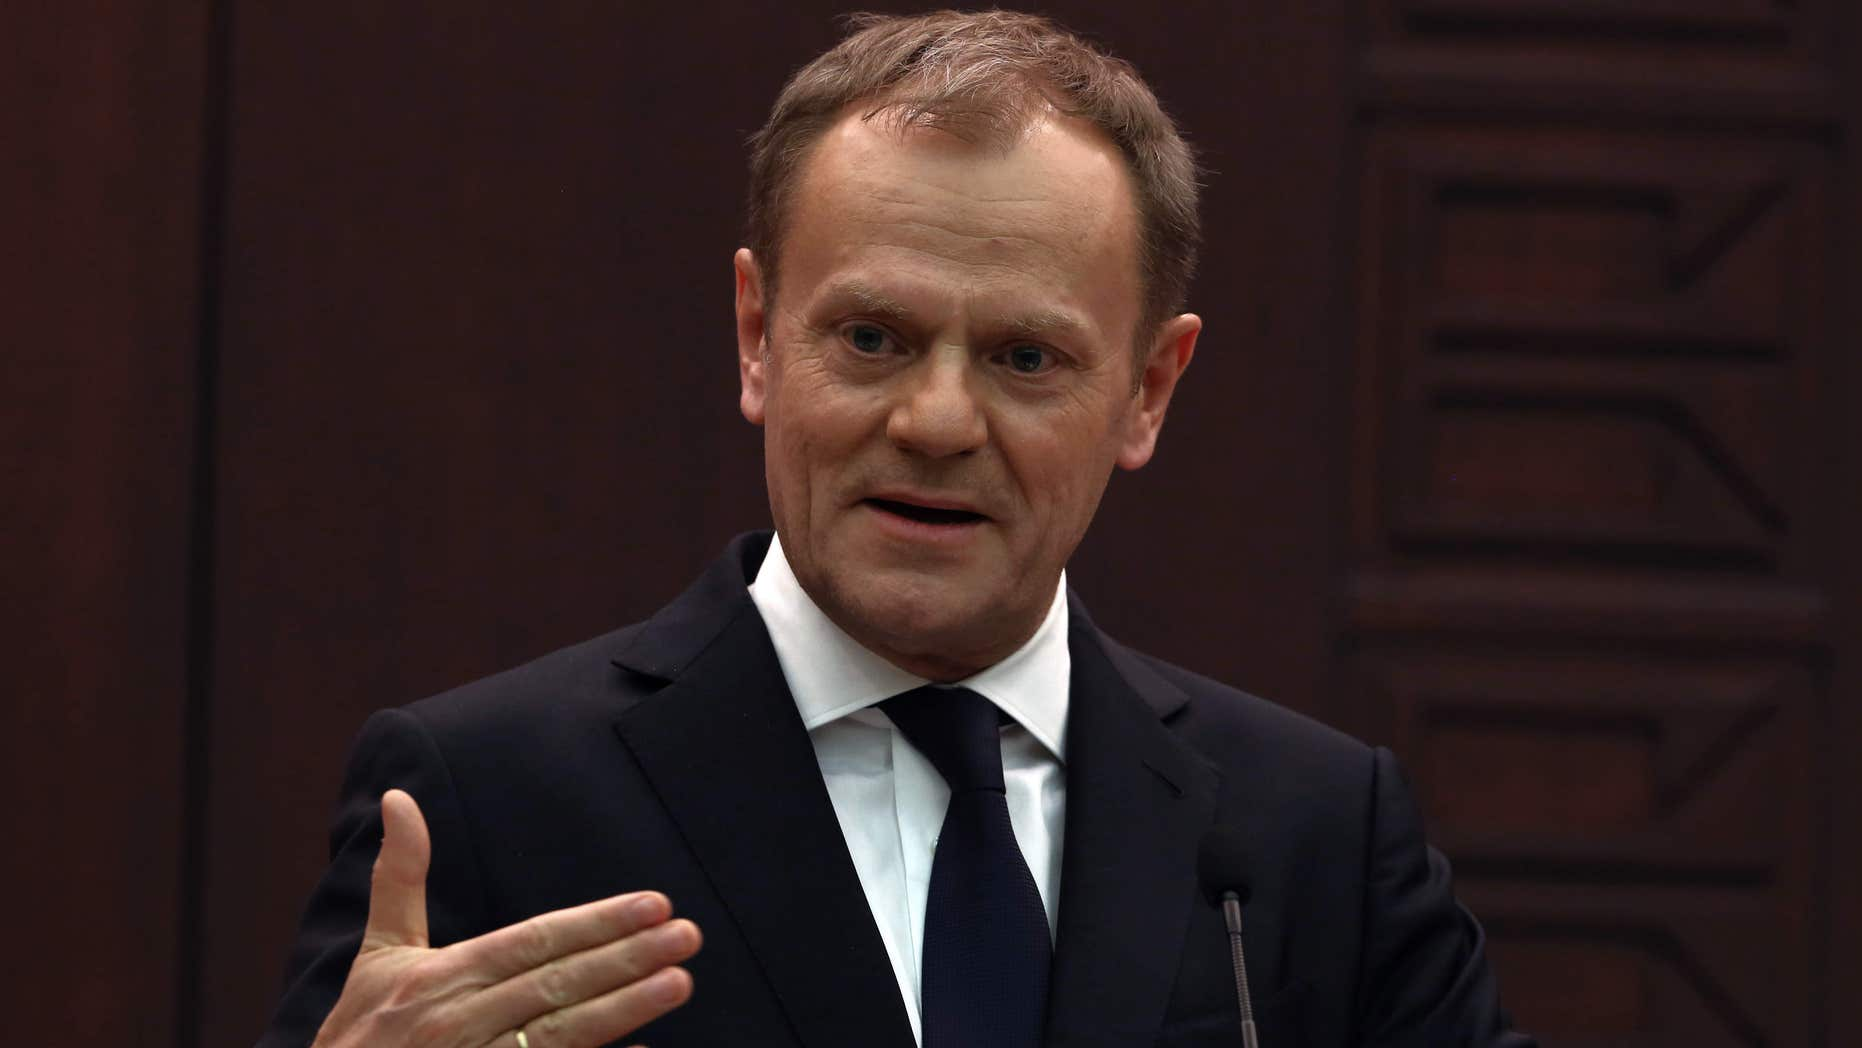 March 3, 2016: European Council President Donald Tusk speaks to the media during a joint press conference with Turkish Prime Minister Ahmet Davutoglu in Ankara, Turkey.